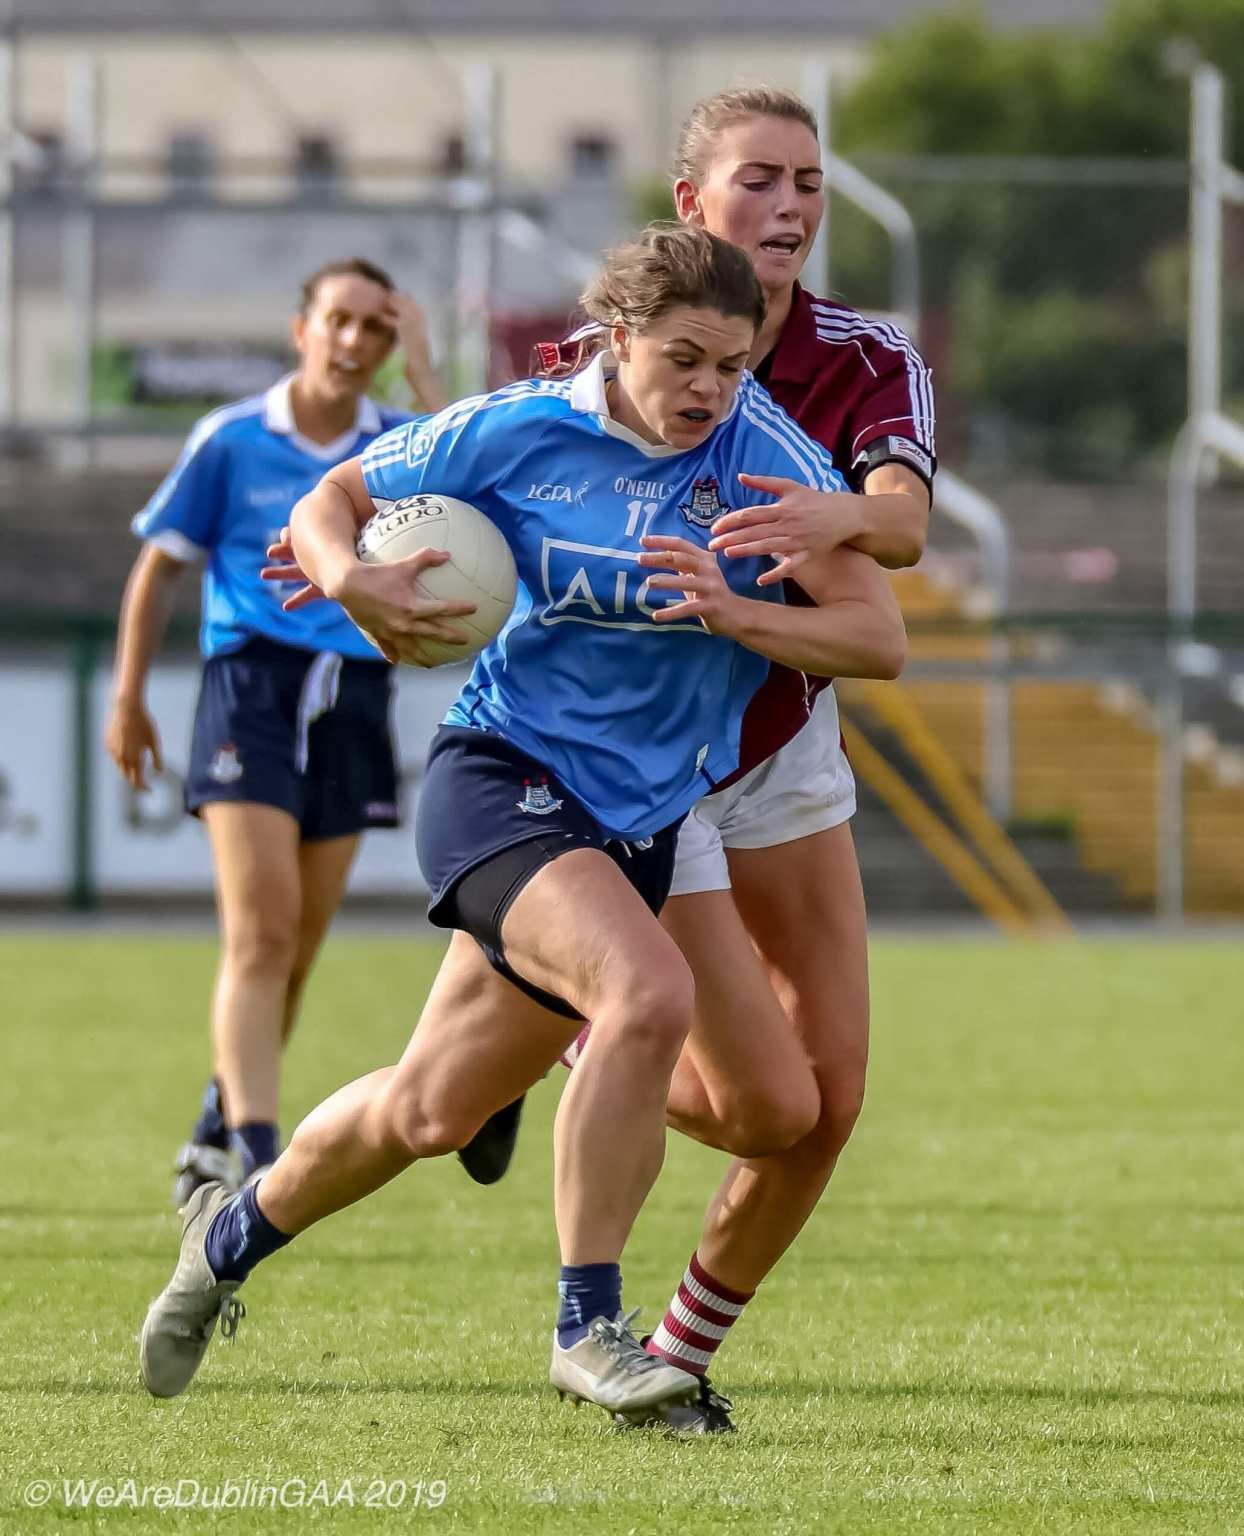 A Dublin Ladies Footballer is tackle by a Galway player both teams meet in the 2019 TG4 All Ireland Final